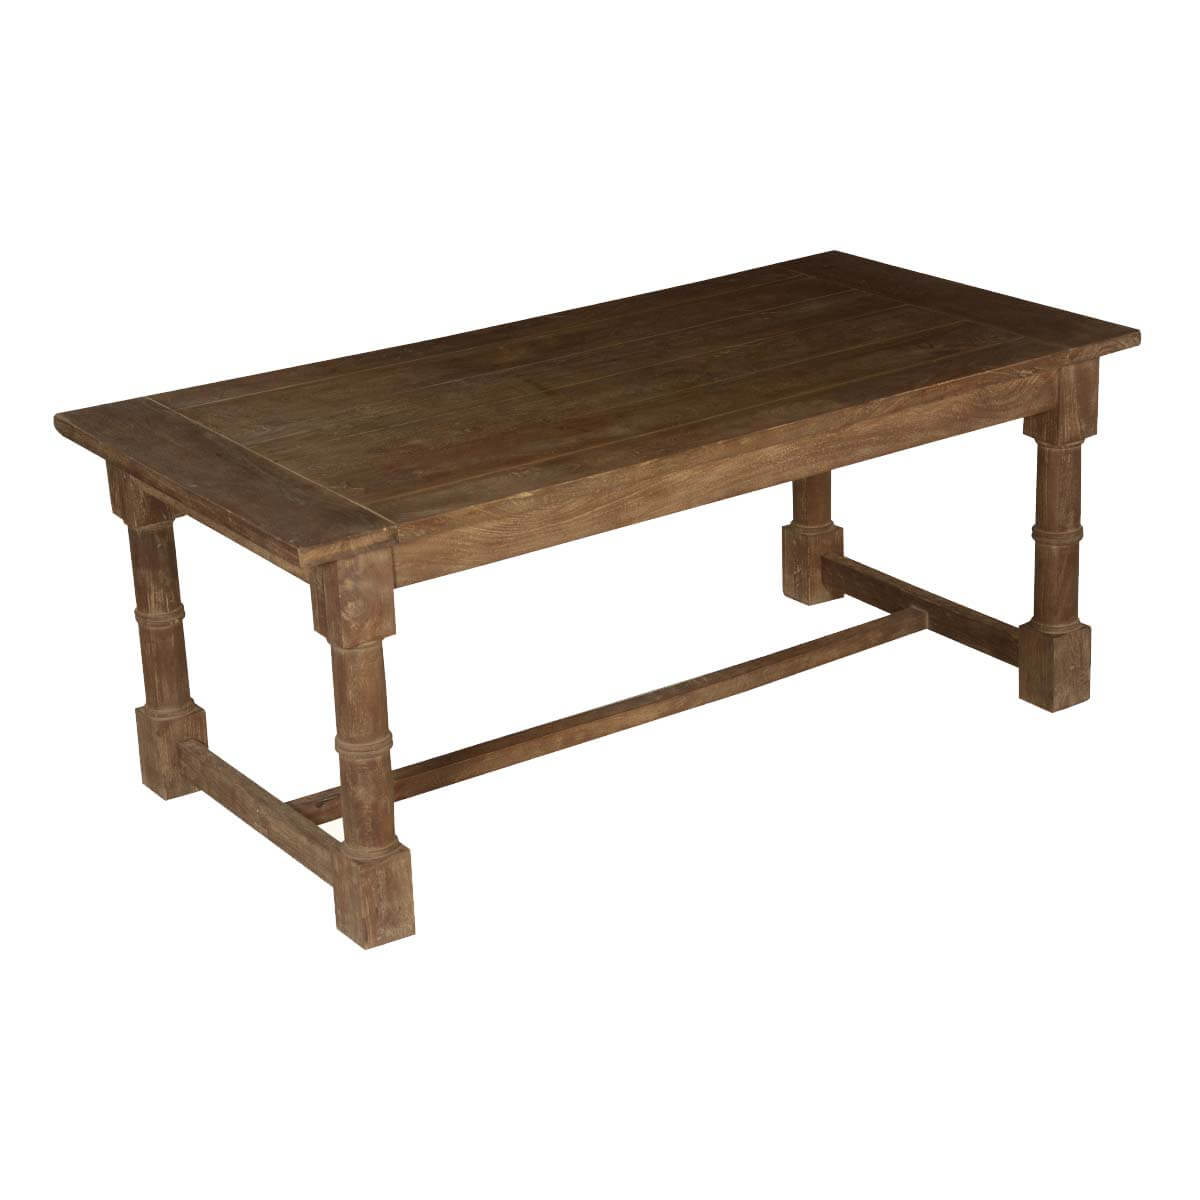 Nottingham Rustic Mango Wood Gothic 72 Dining Table